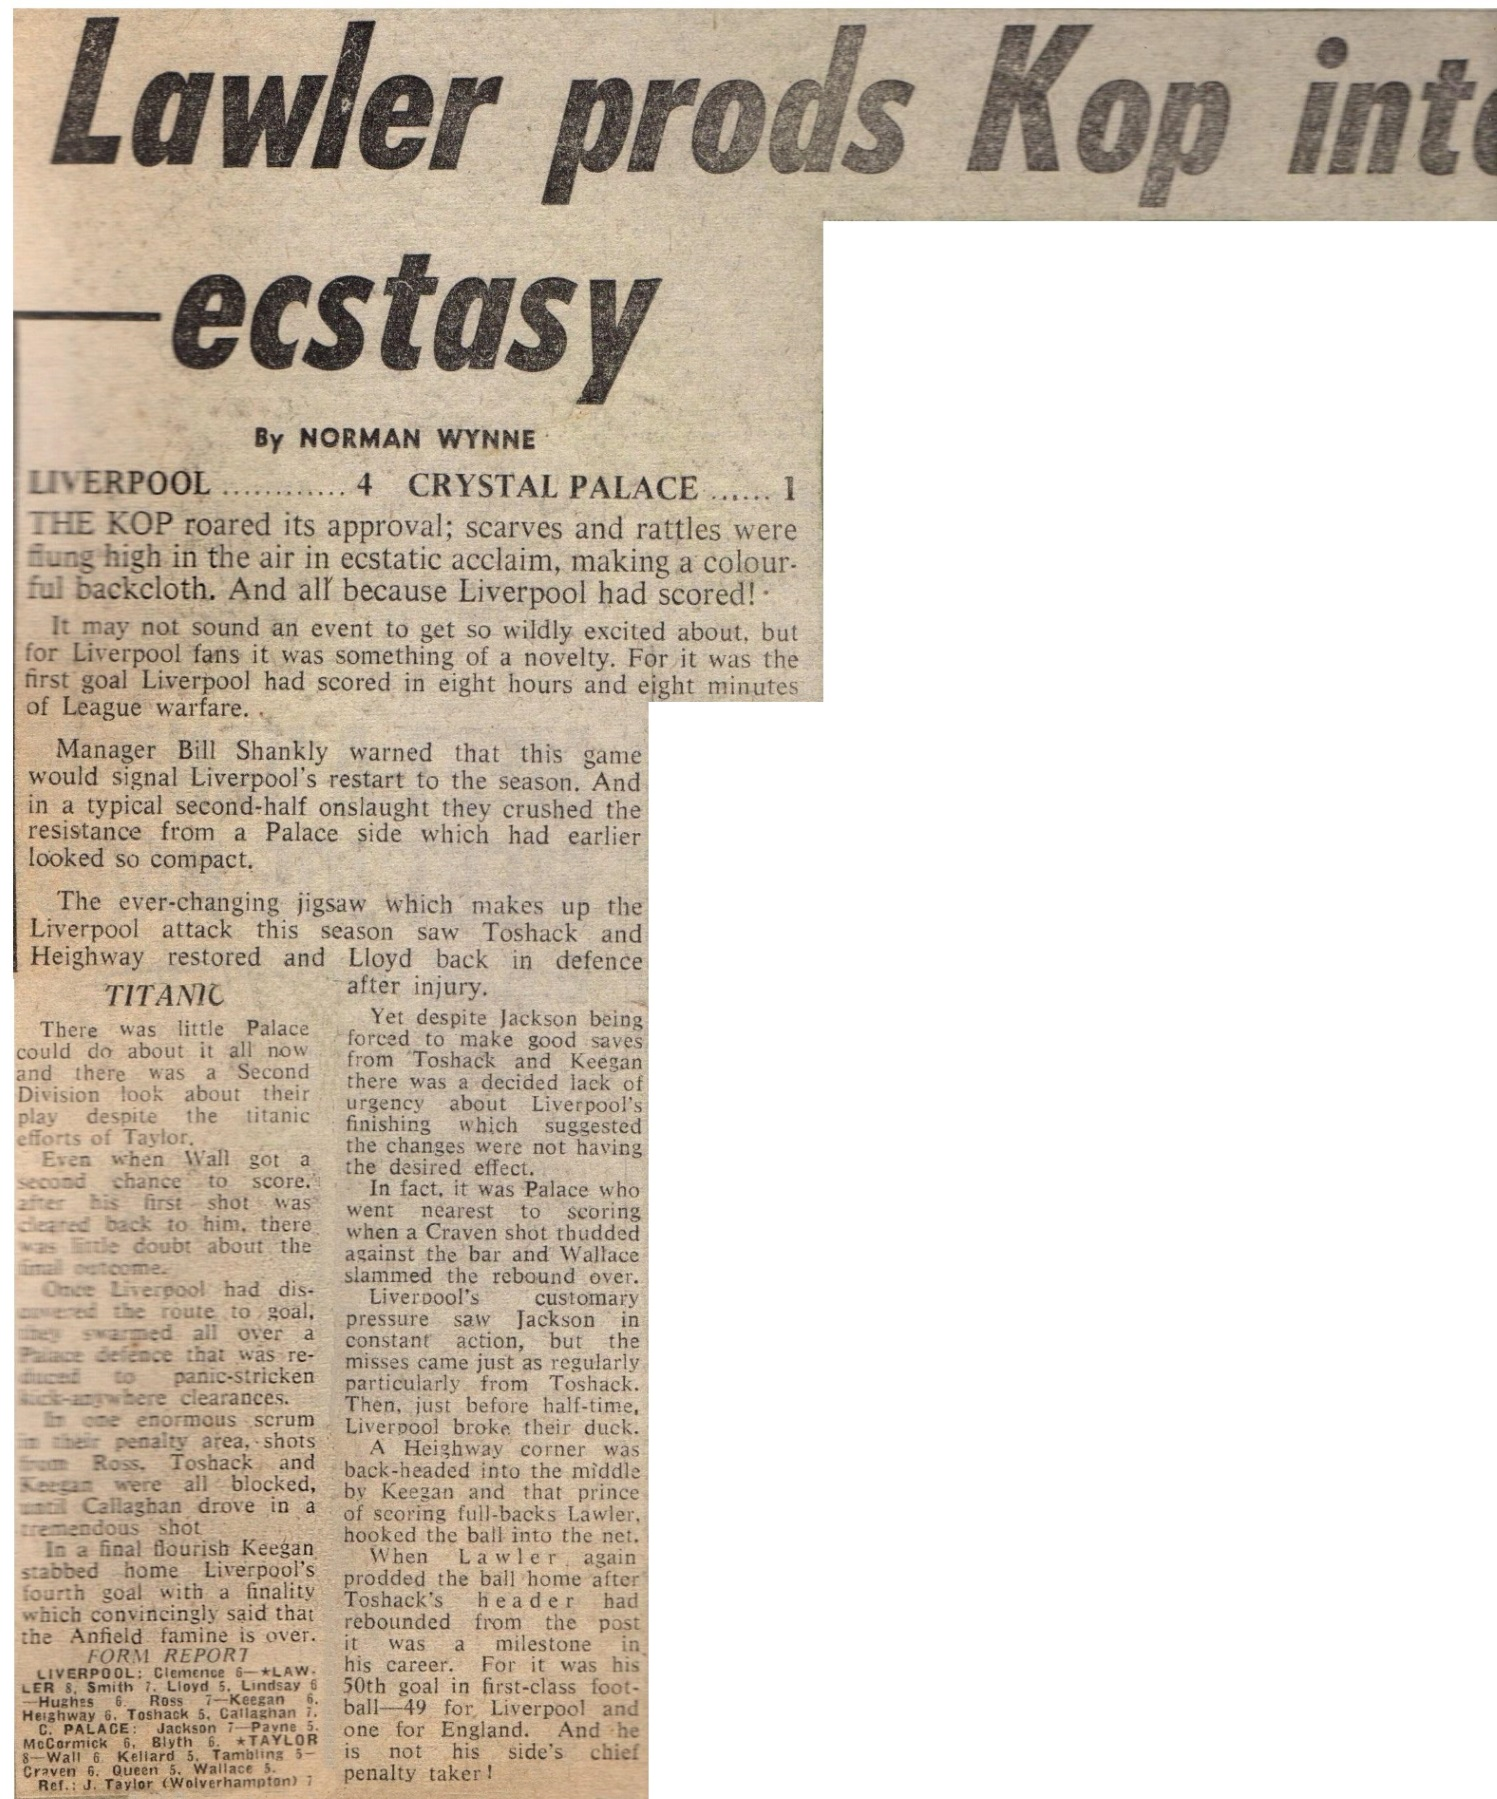 Lawler prods Reds into ecstasy - 29 January 1972